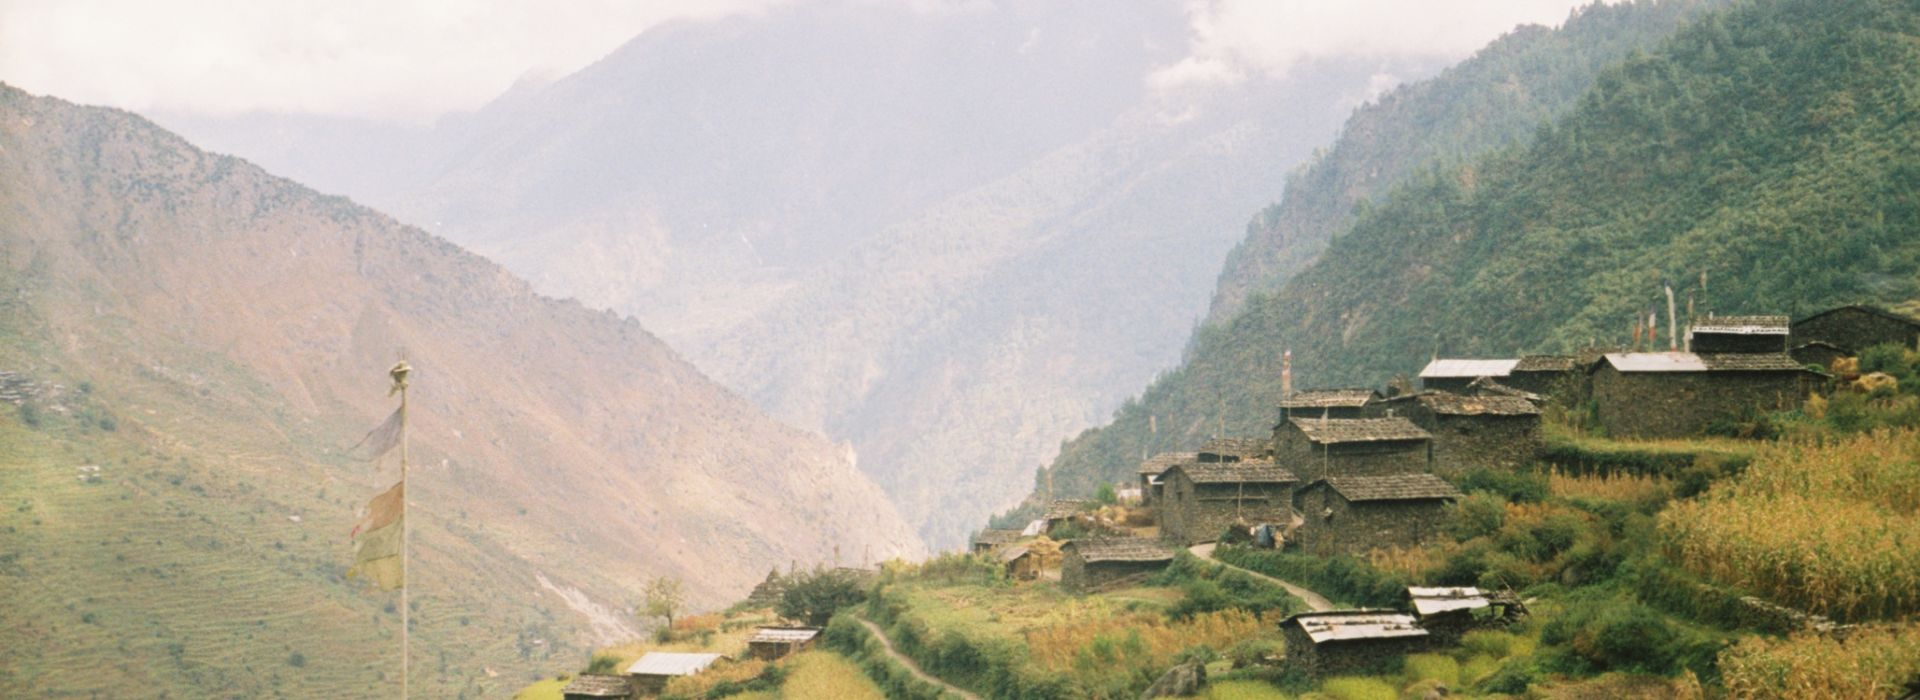 Langtang Village Before and After Earthquake